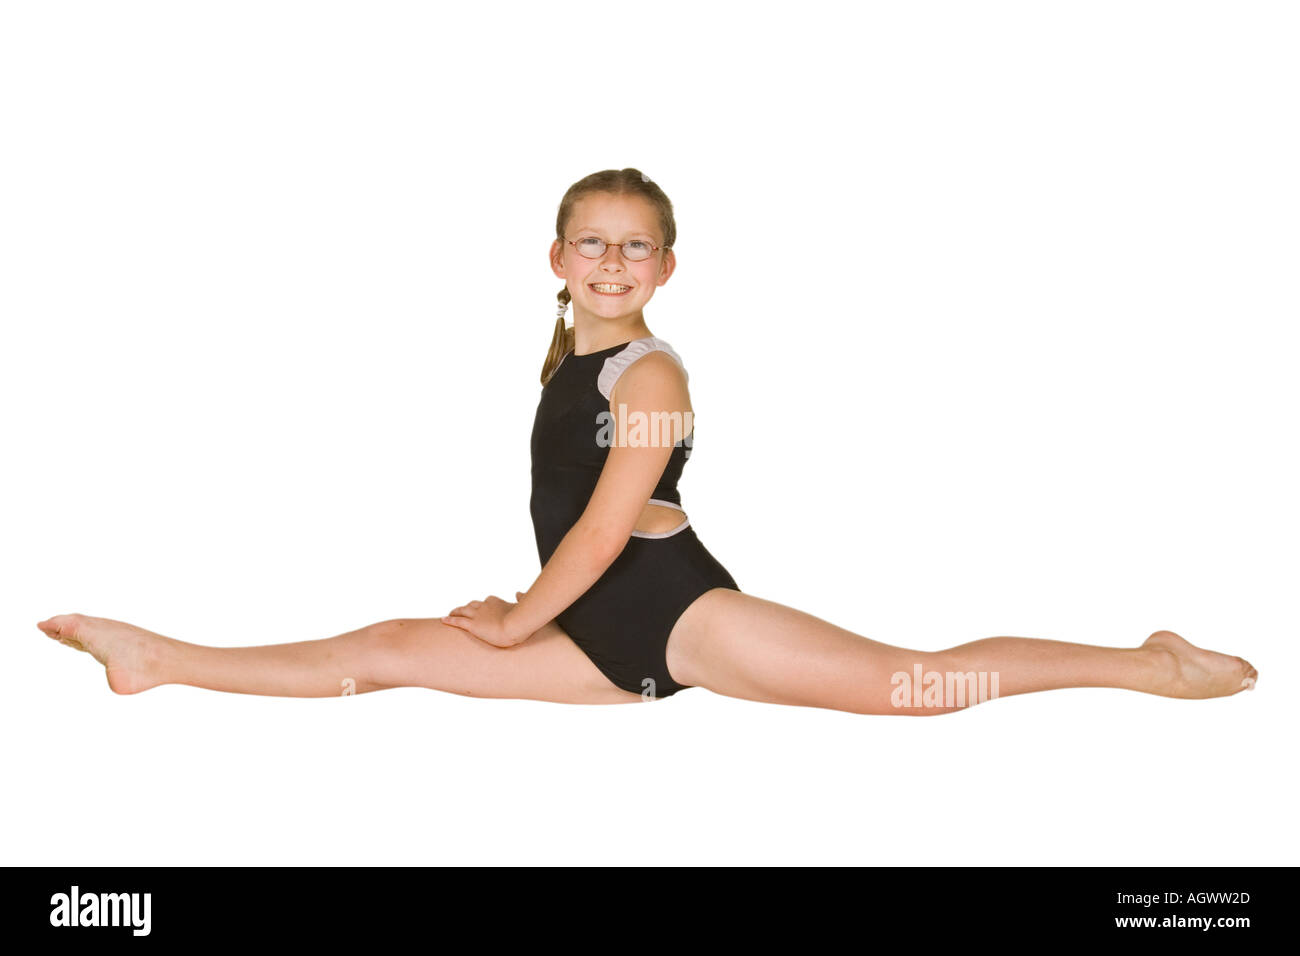 model release 285 10 year old caucasian girl in gymnastics